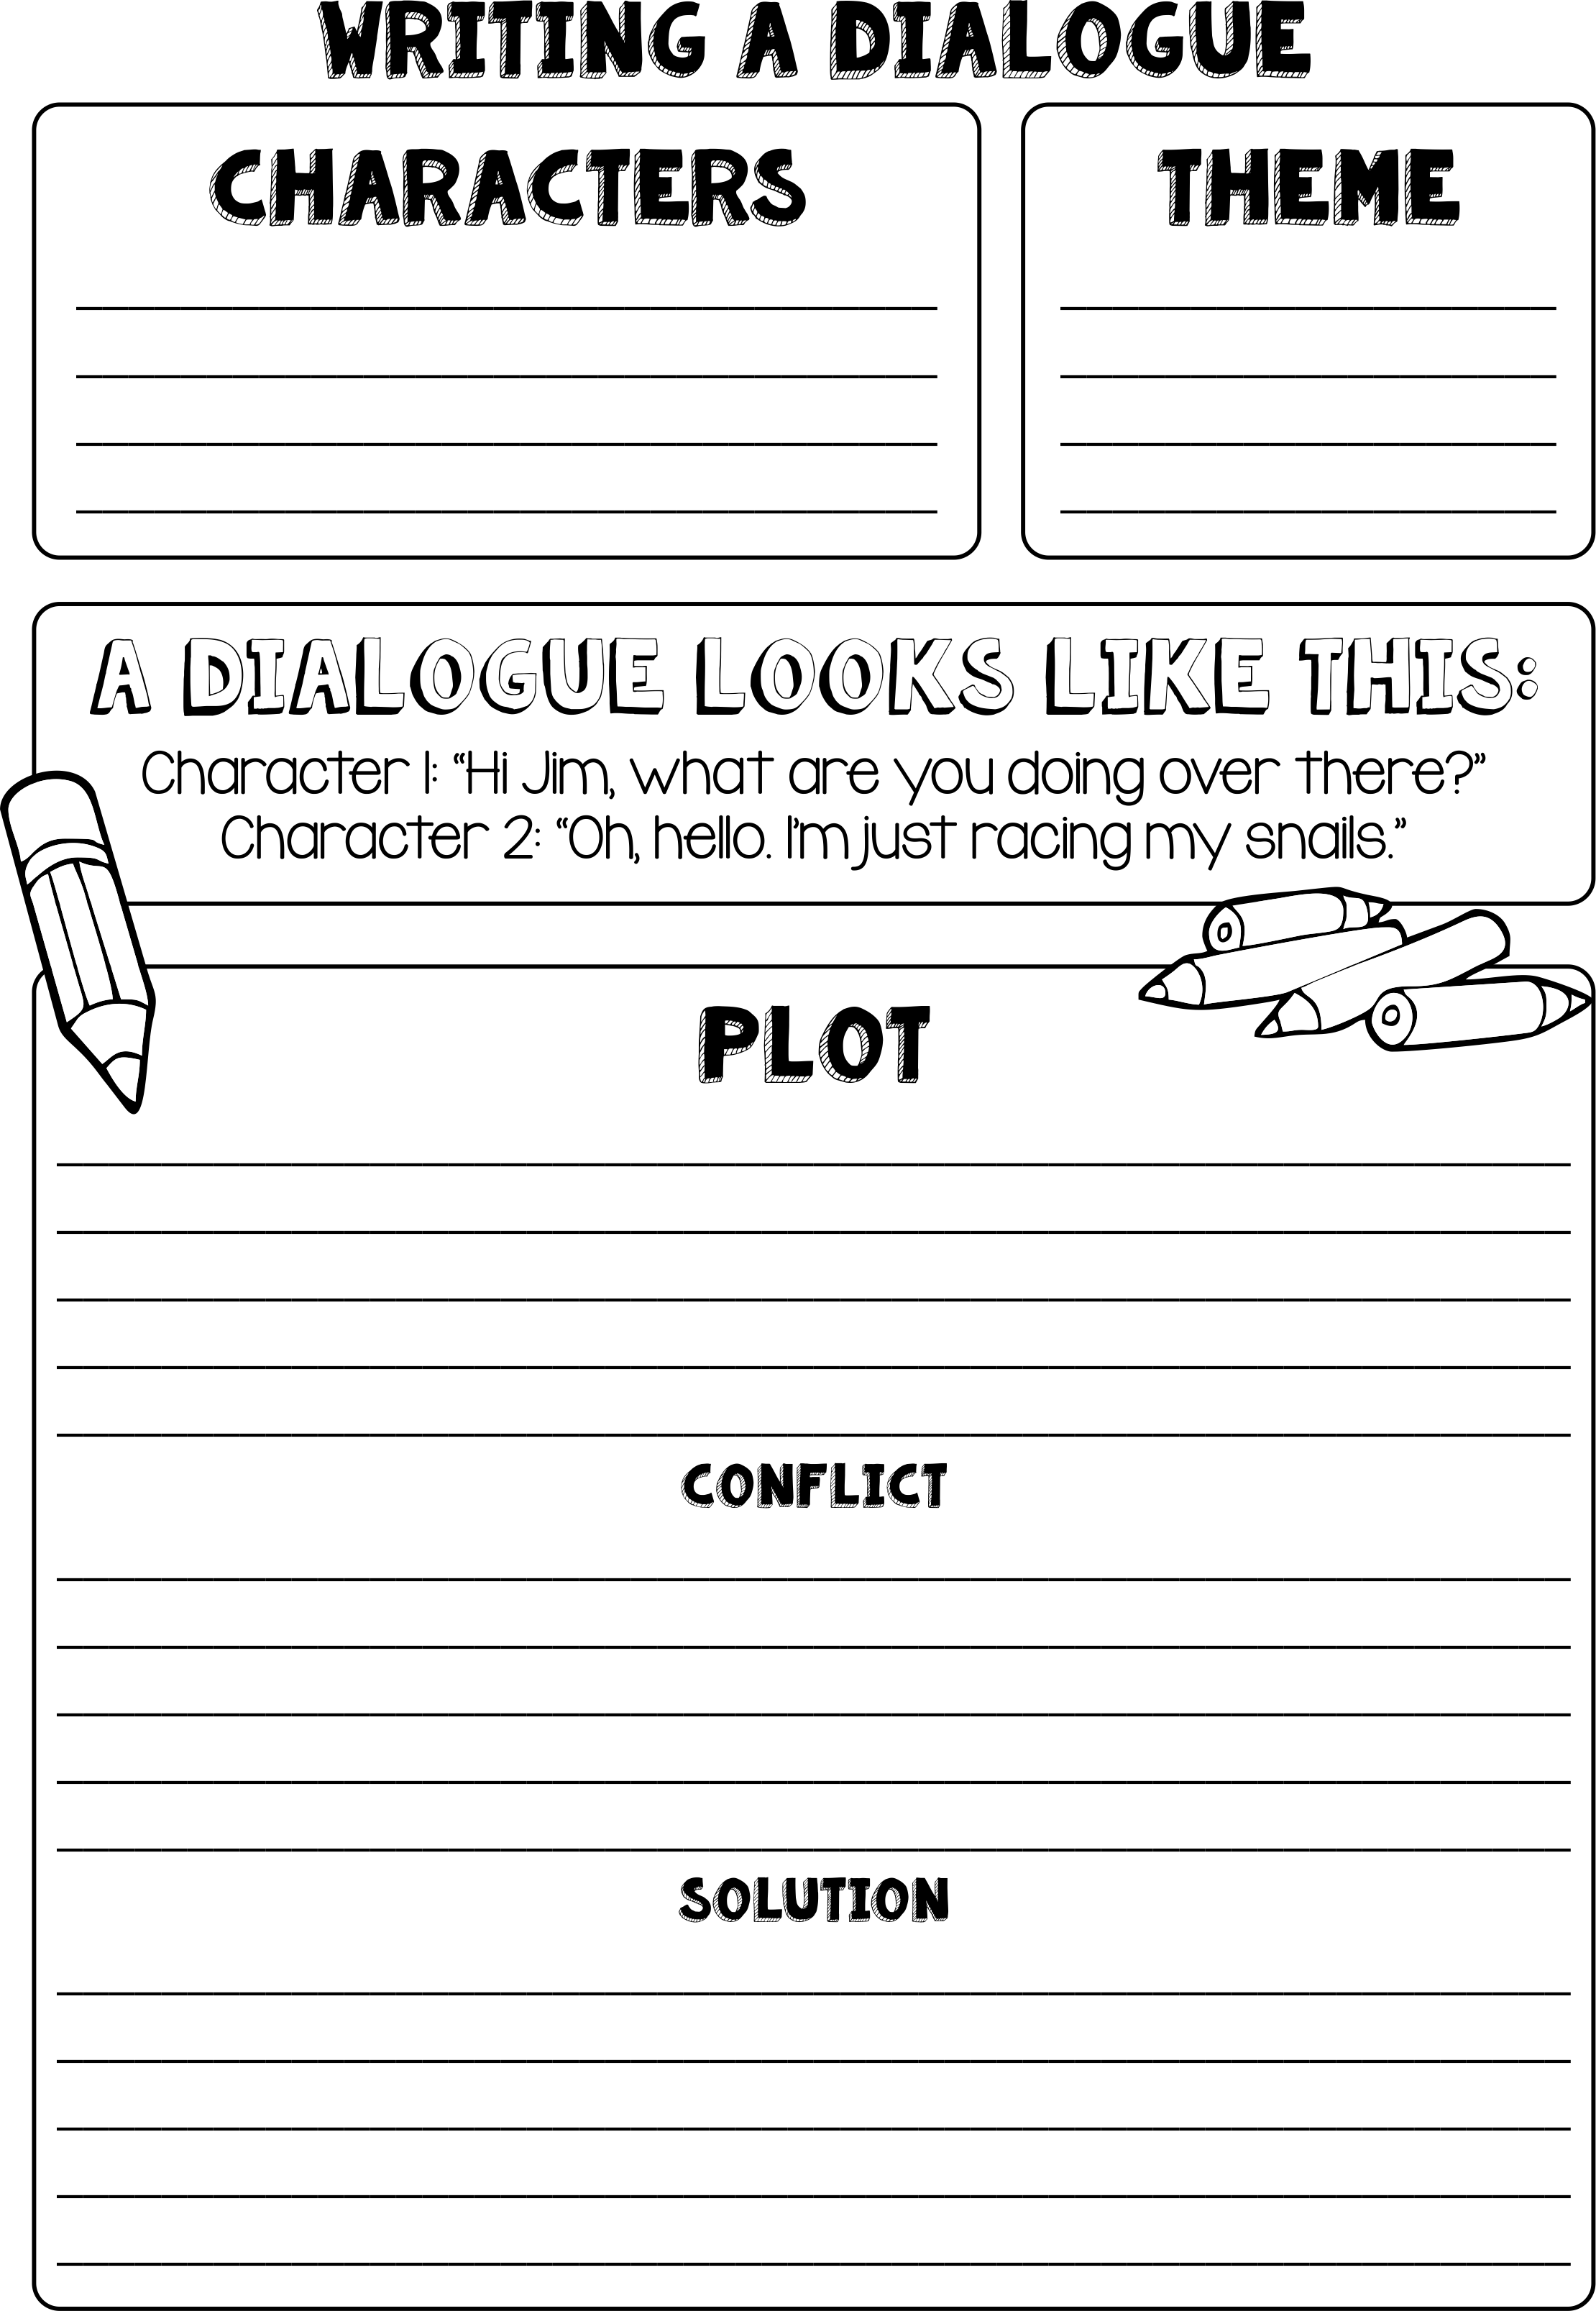 How To Write Dialogue Dialogue Writing Frame